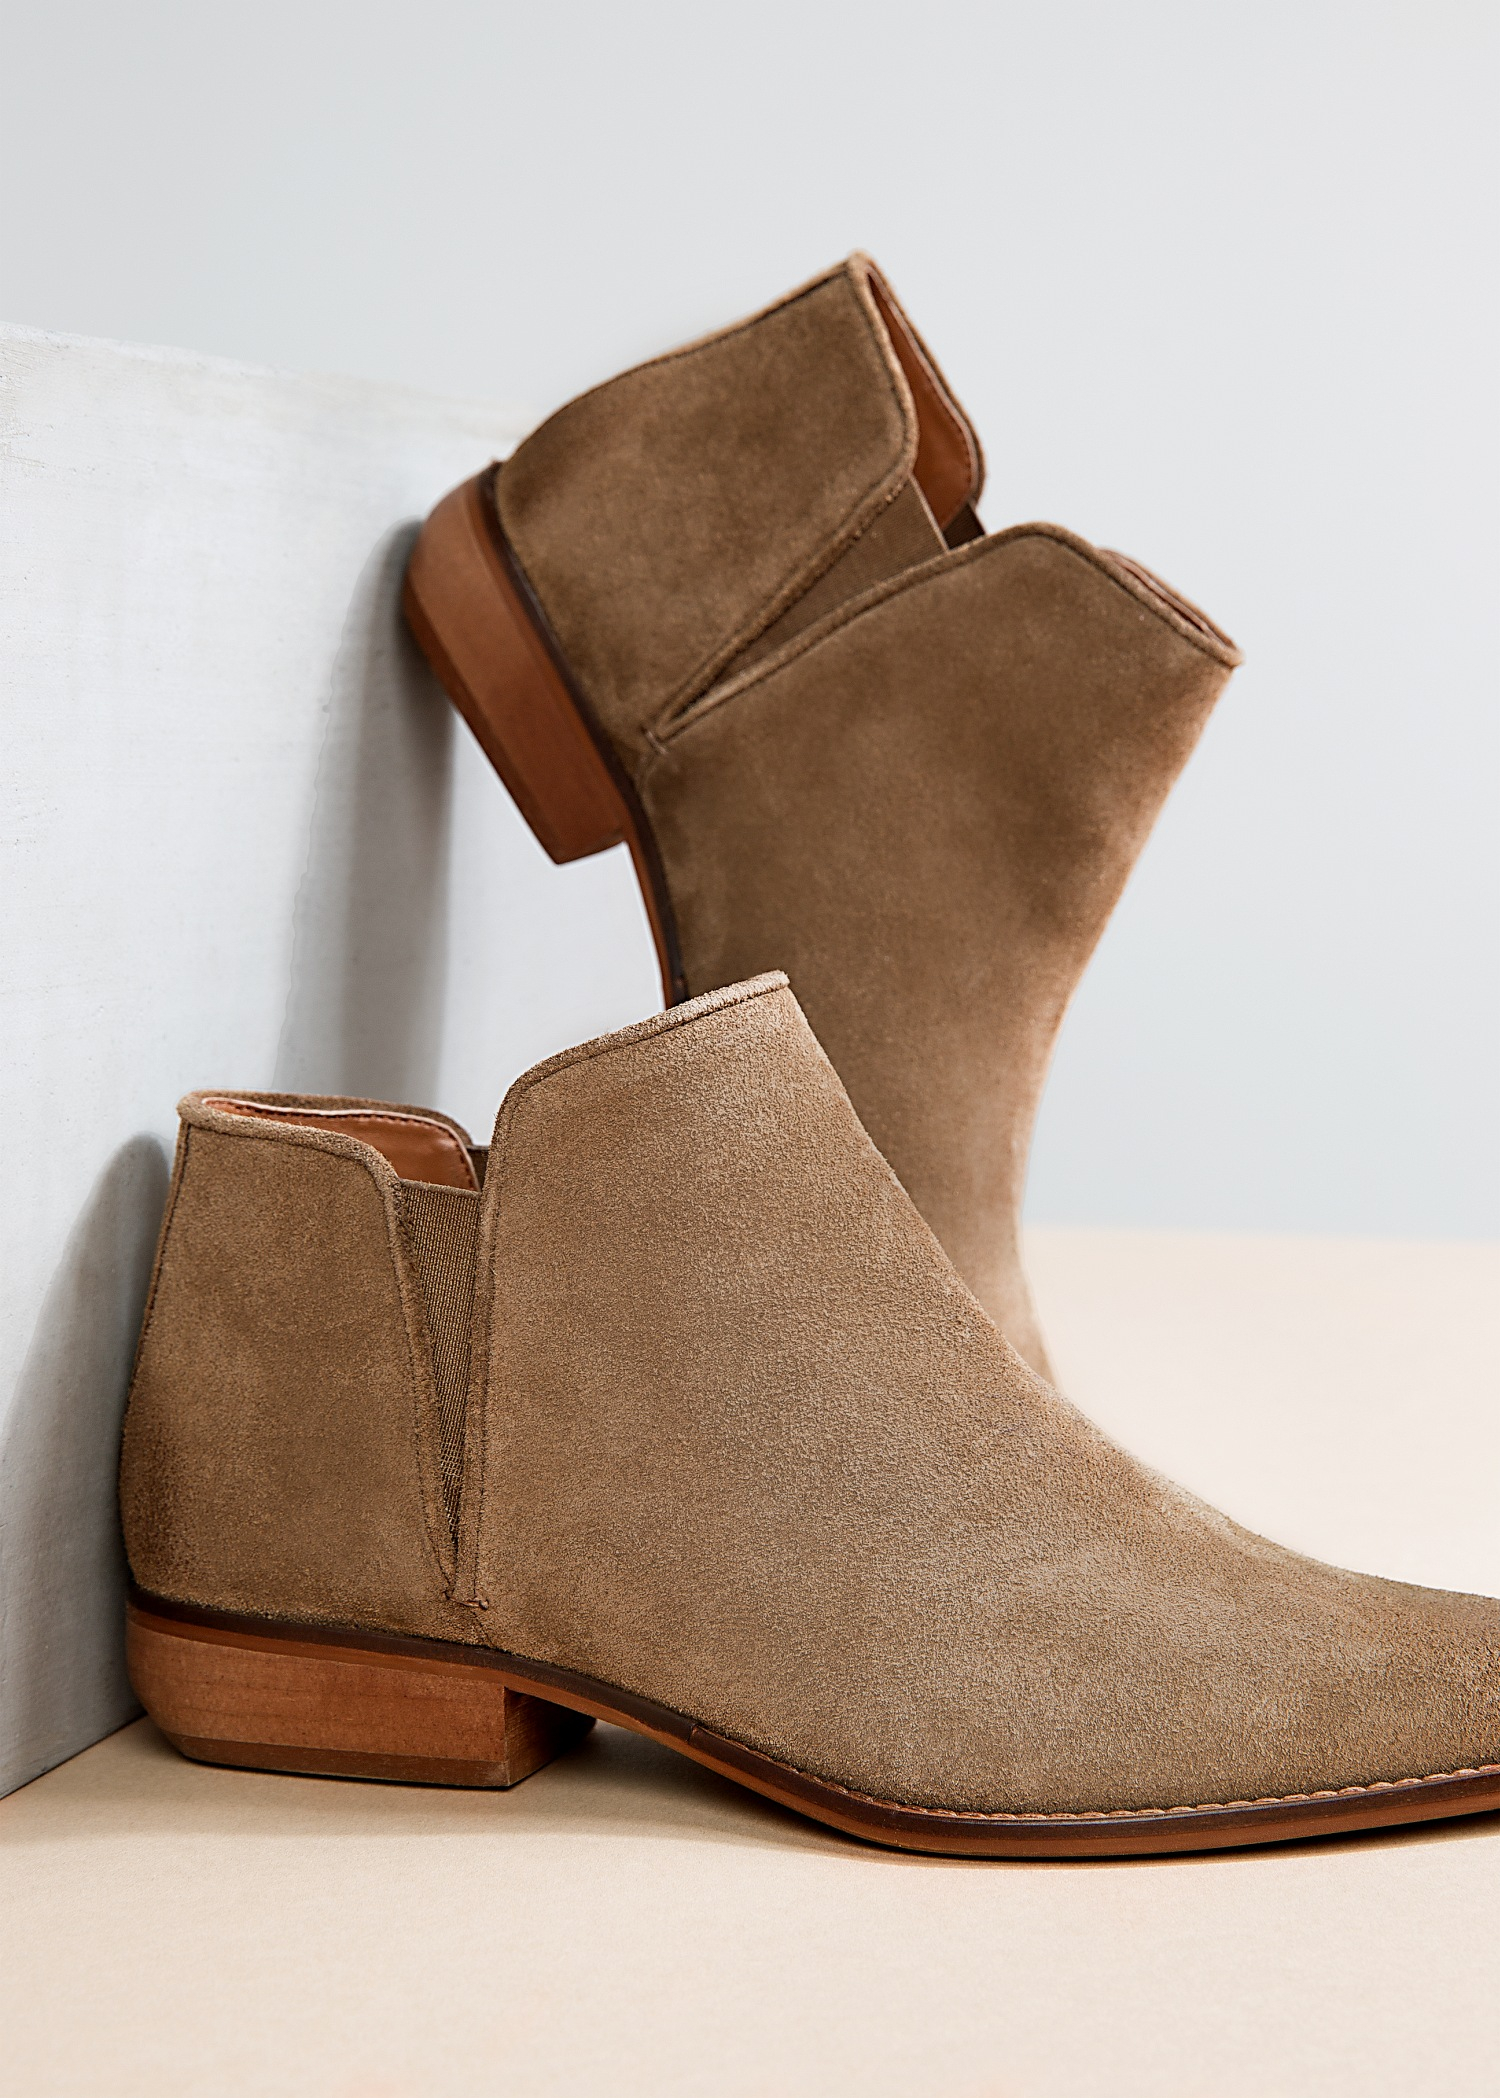 Mango Flat Suede Ankle Boots in Natural | Lyst